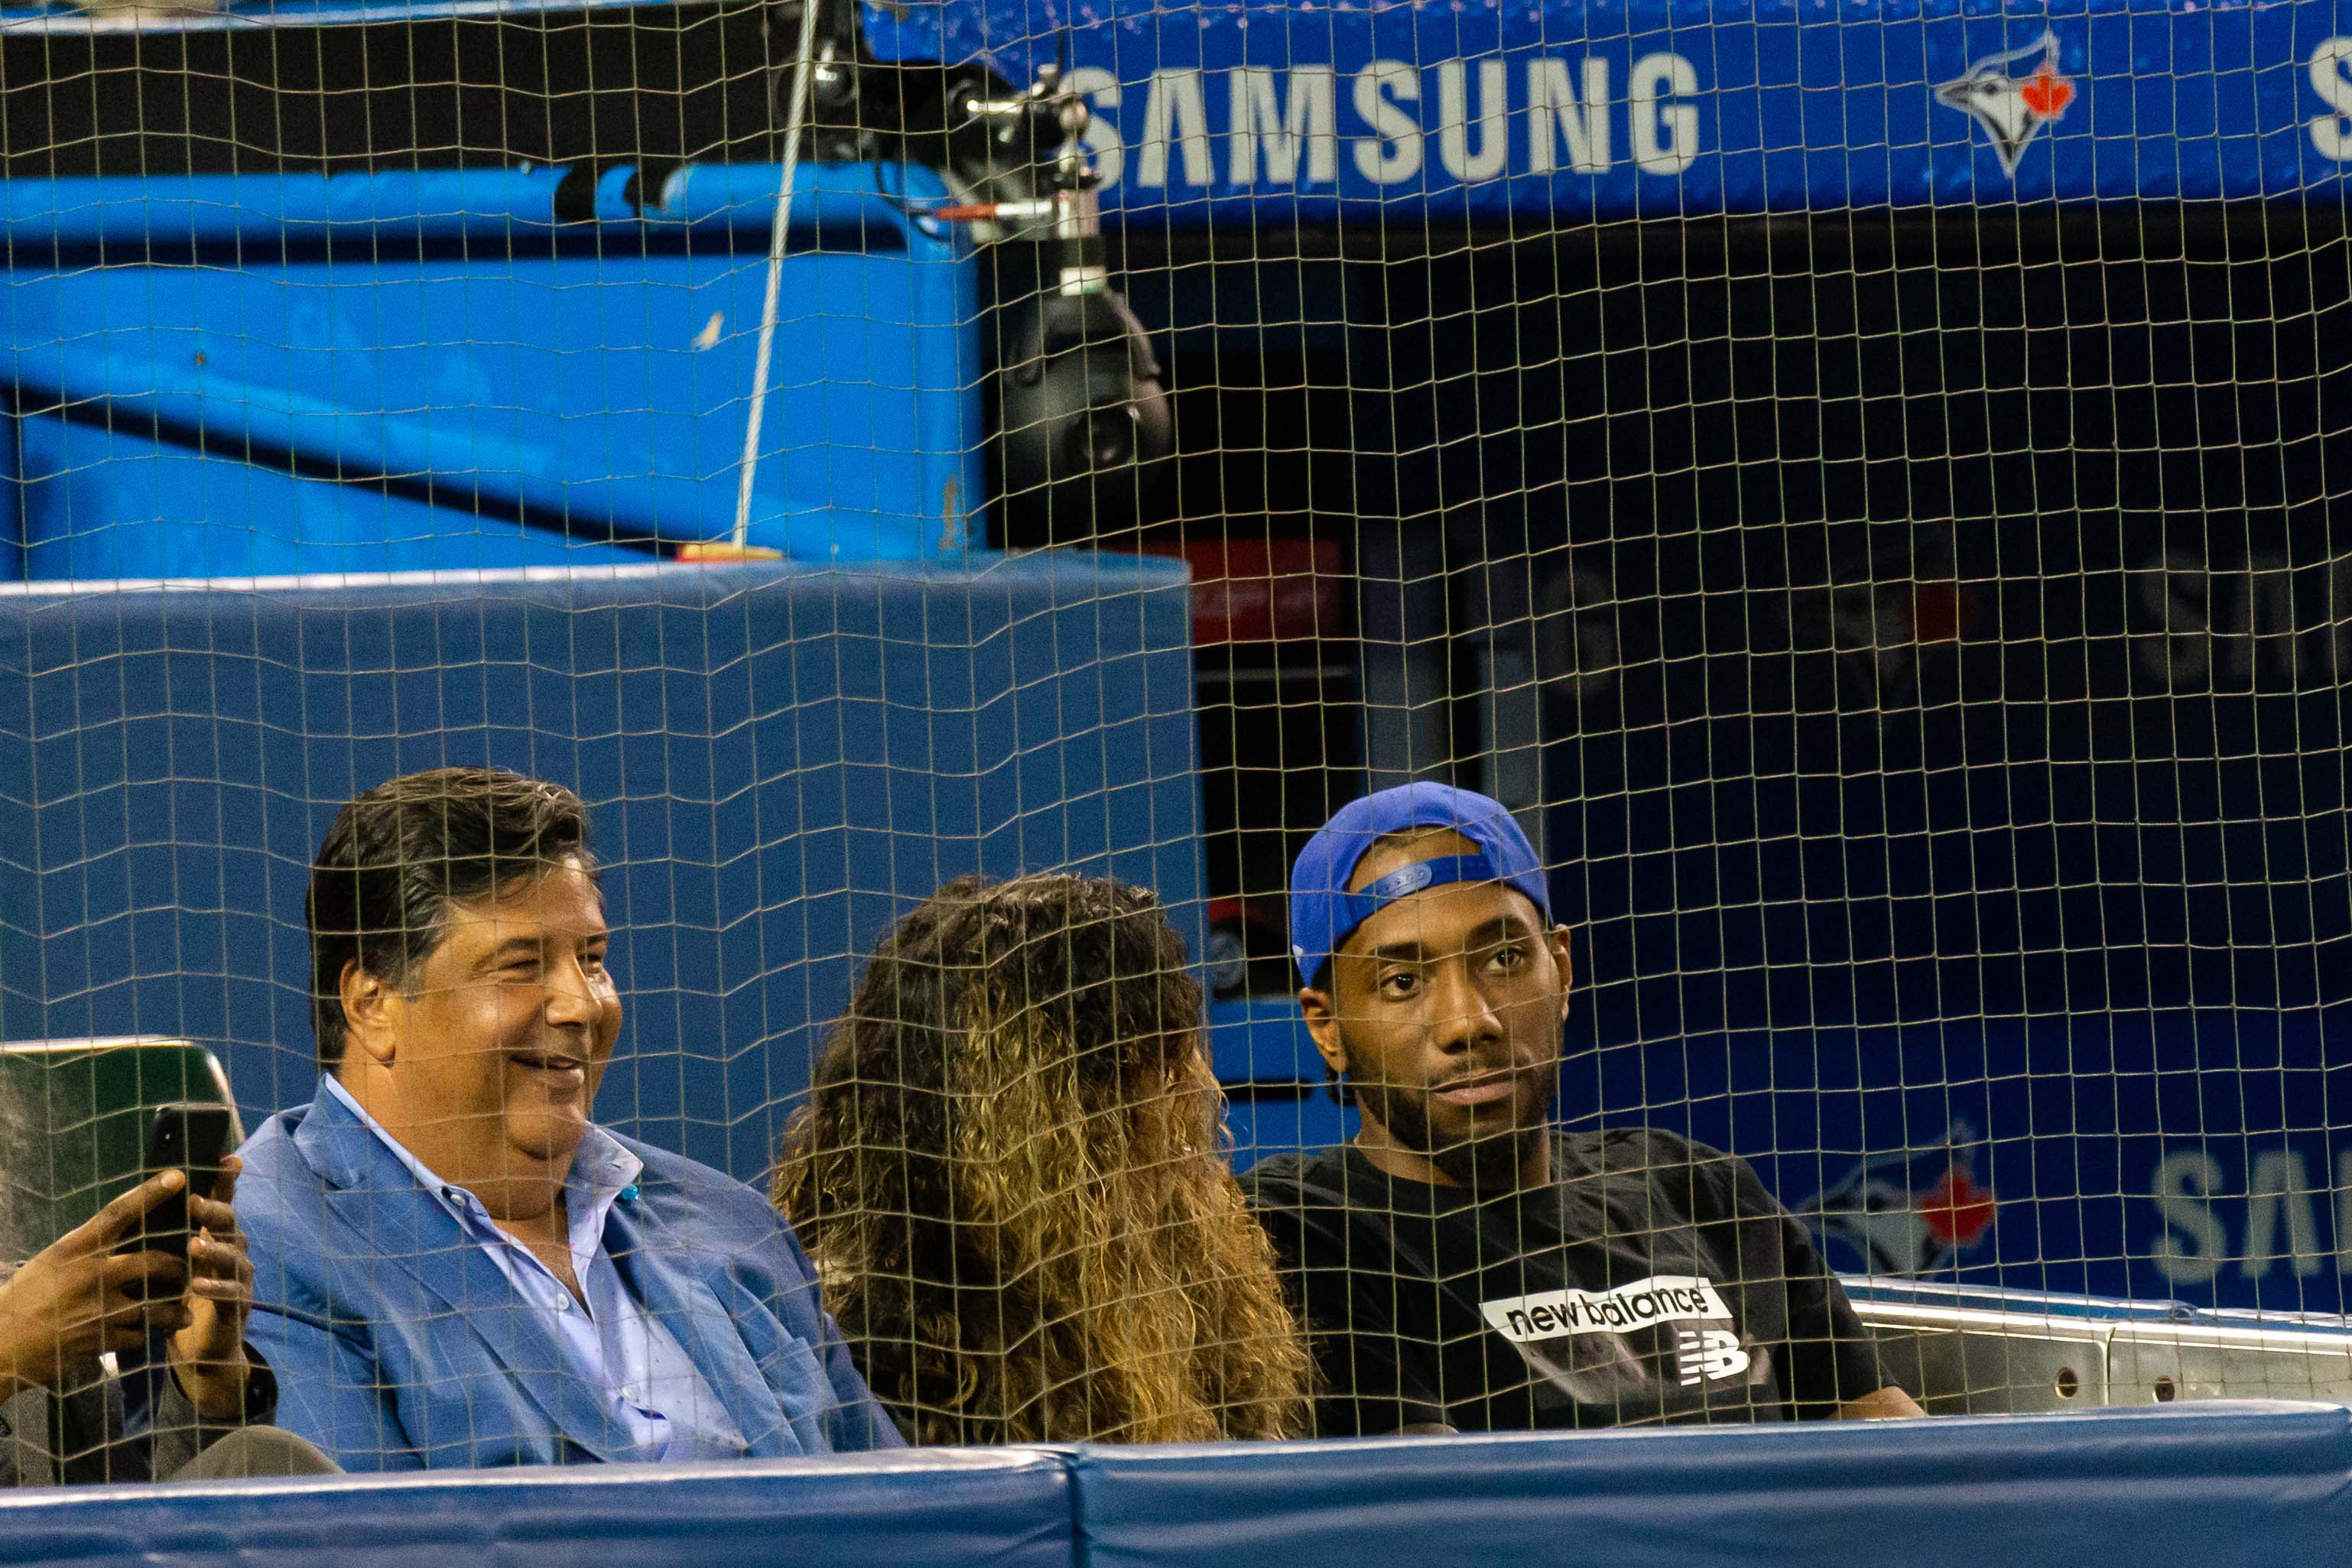 Kawhi Leonard admires Mike Trout's greatness during Angels-Blue Jays game in Toronto thumbnail